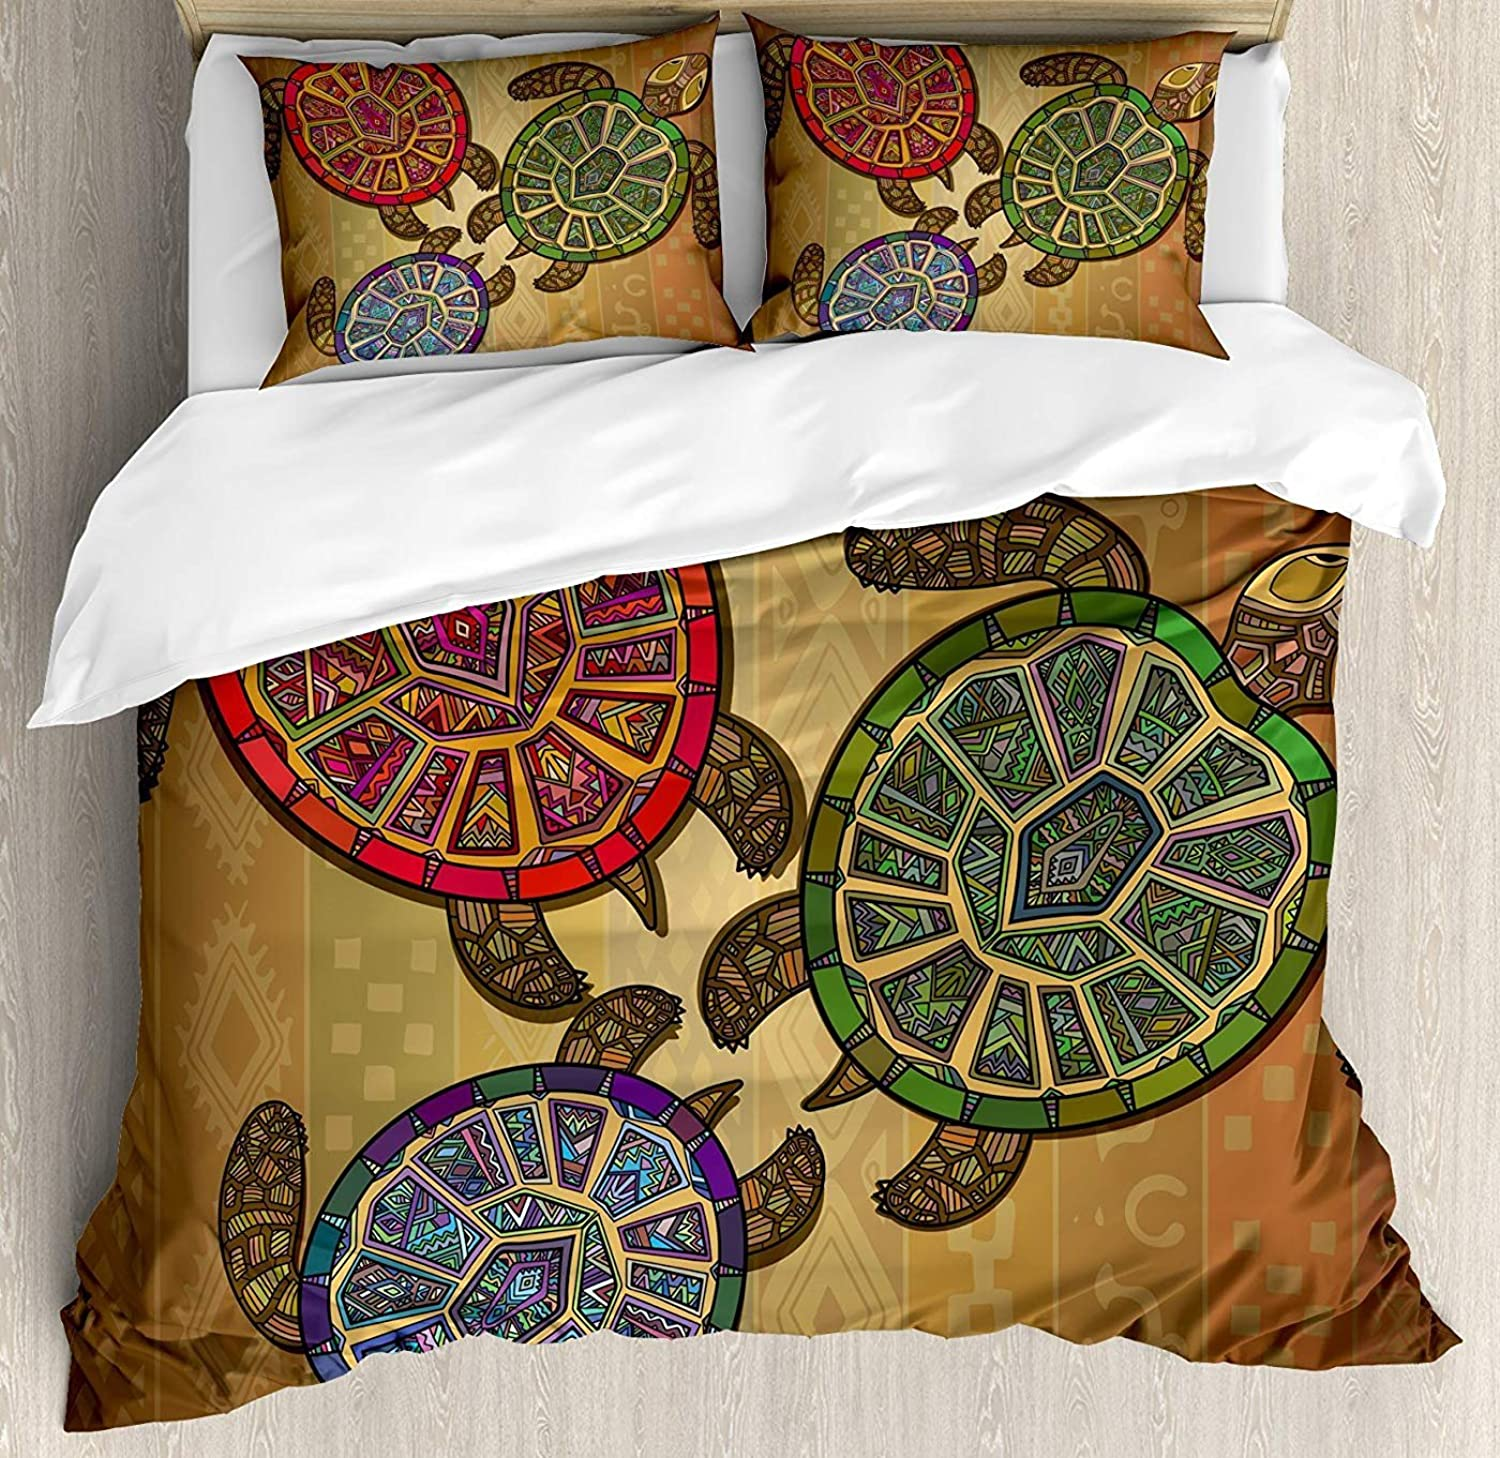 Turtle Duvet Cover Set Full Size, Three Ocean Turtles Ethic Style Animals Geometric Vibrant Ocean Theme Artwork Print,Lightweight Microfiber Duvet Cover Sets, Multicolor